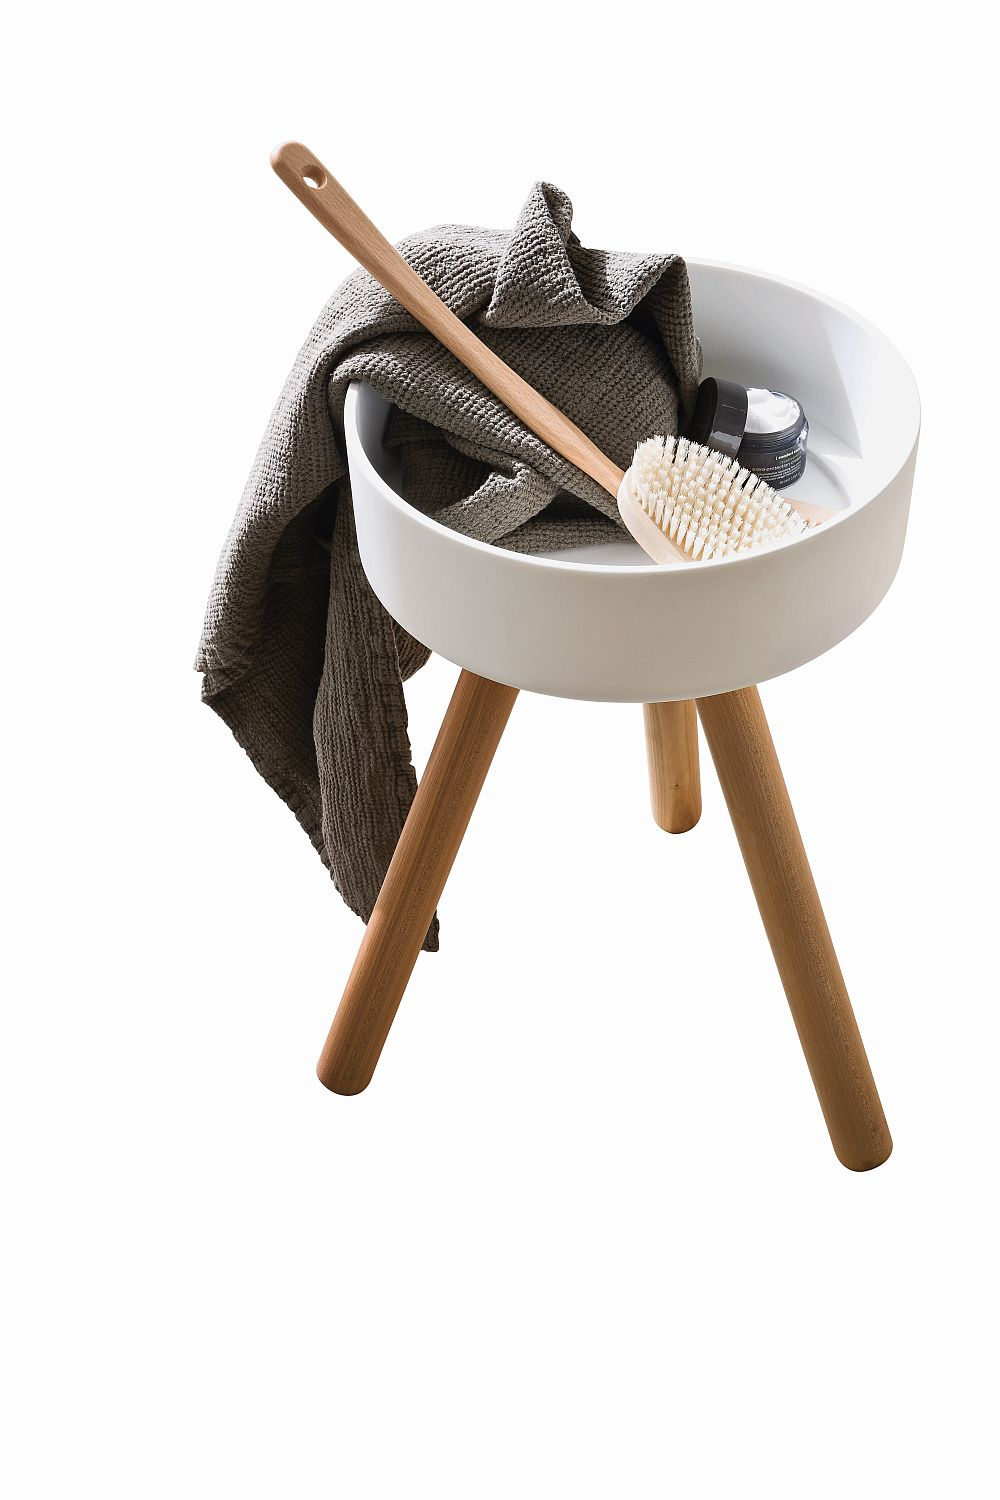 Small stool serves you in more ways than one!